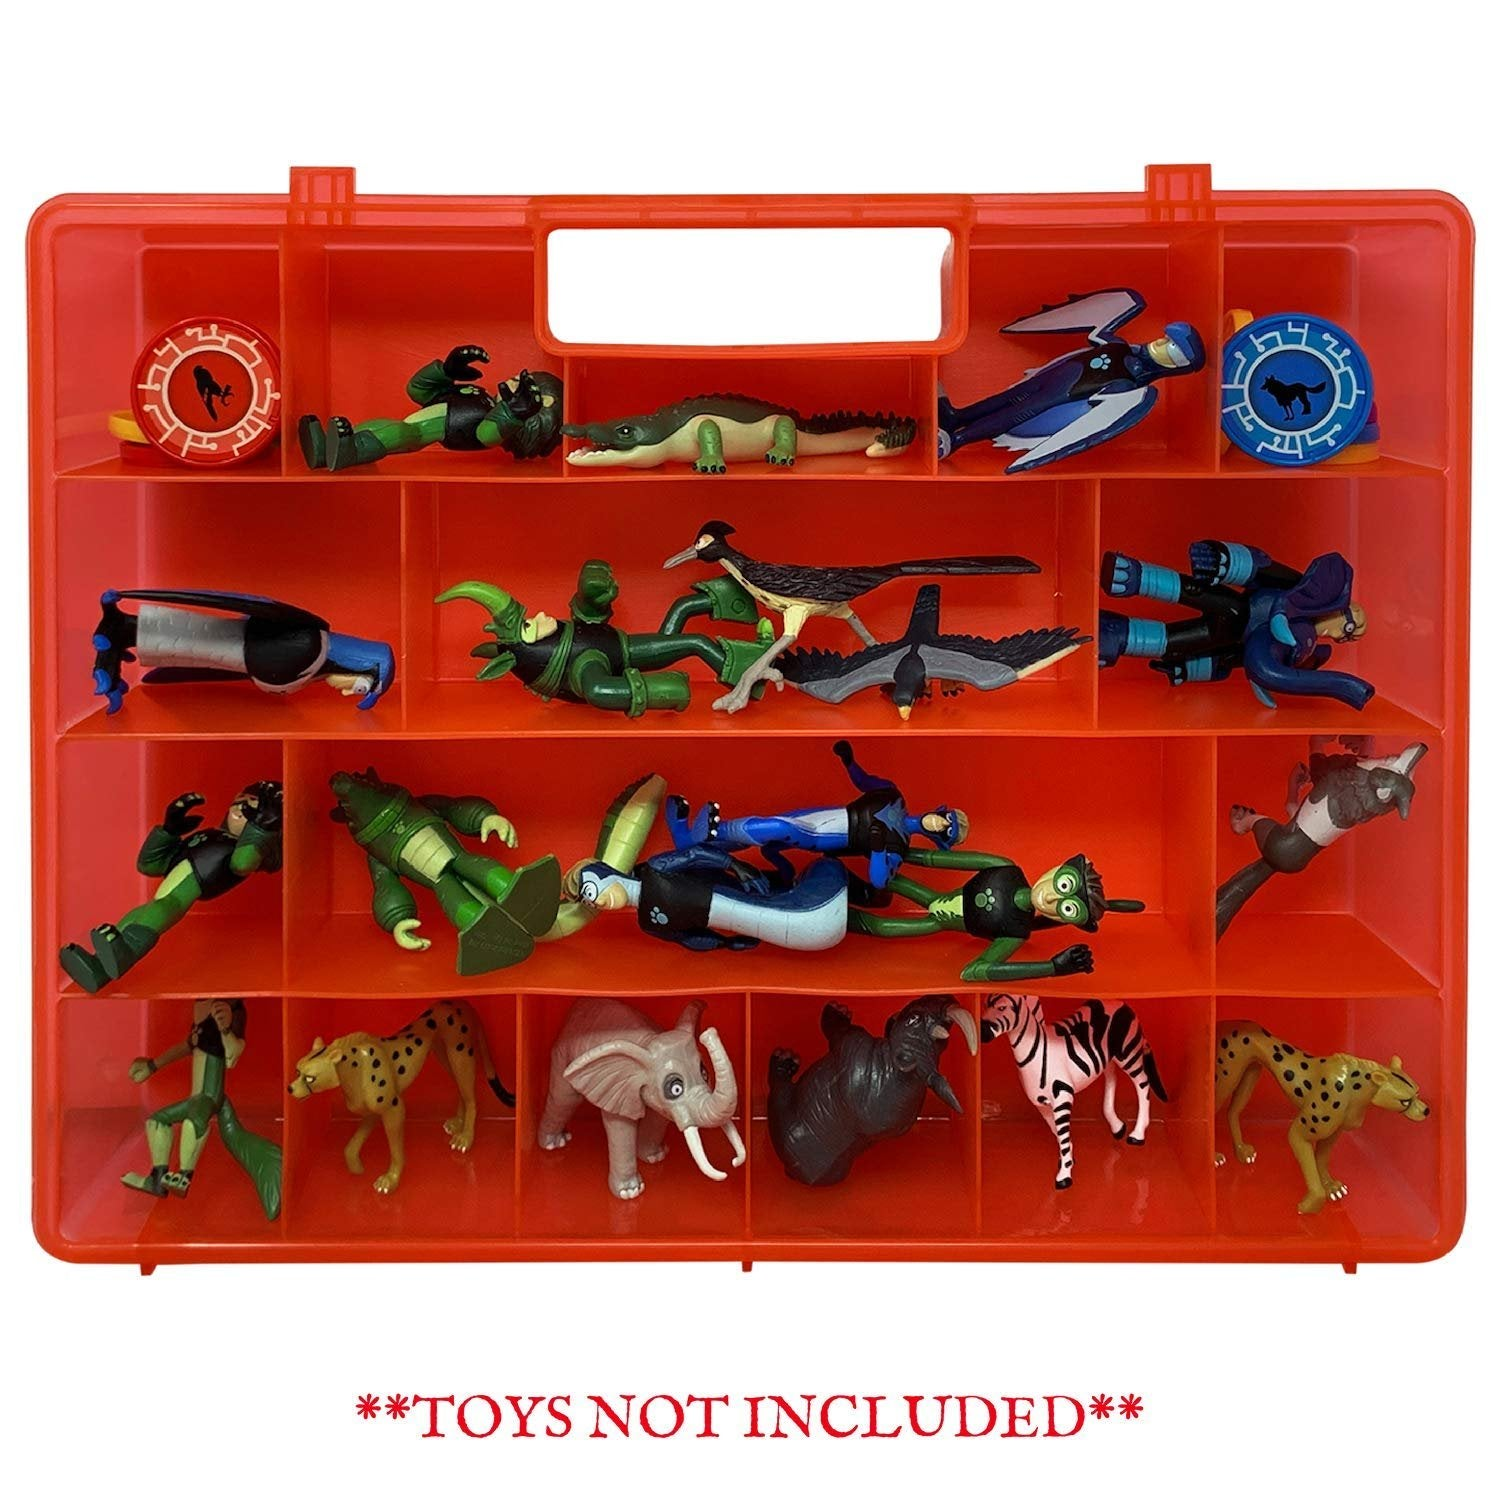 Life Made Better Newly Designed Toy Carrying and Storage Case Compatible with Wild Kratts Toys, not Made by Wild Kratts